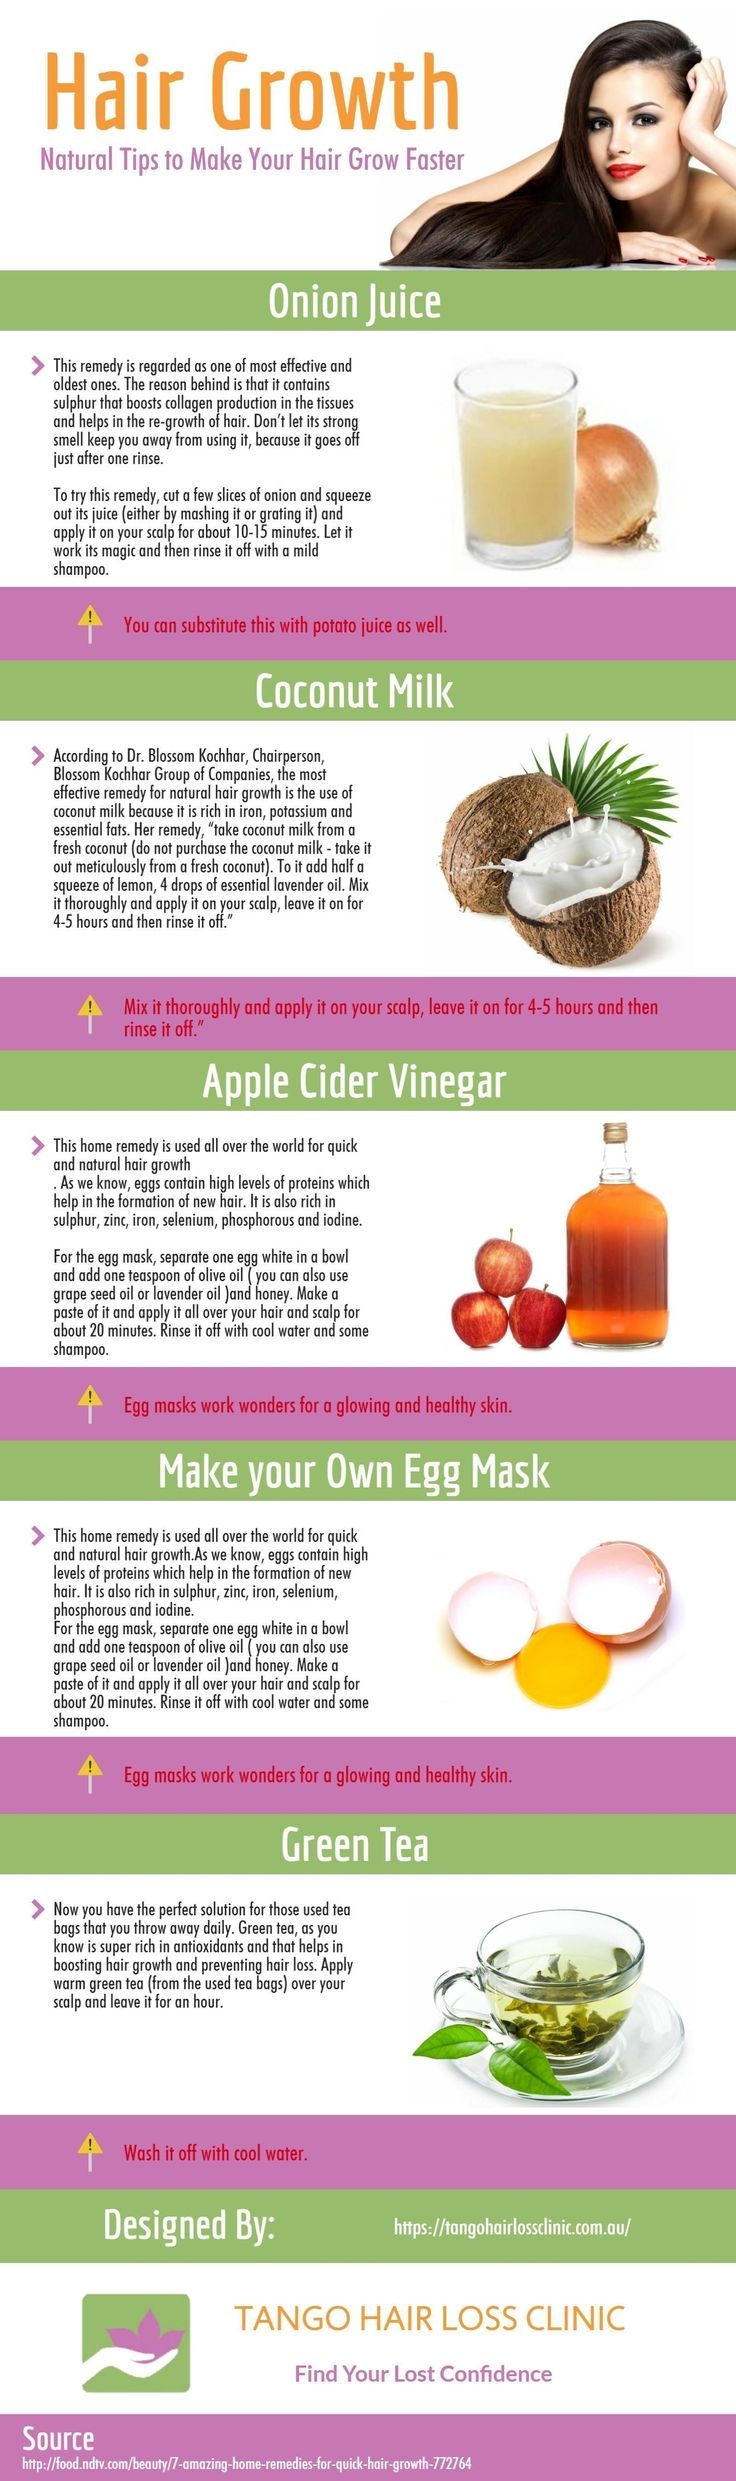 The following infographic is designed by Tango Hair Loss Clinic. Hair grows on its own, however, hair growth can be affected by the way you treat and care for it. If you want to grow long beautiful hair, what you must follow some rules and learn to take care of your hair. This infographic gives 5 good tips for making hair grow faster. #hairlossinfographic #haircaregrowth